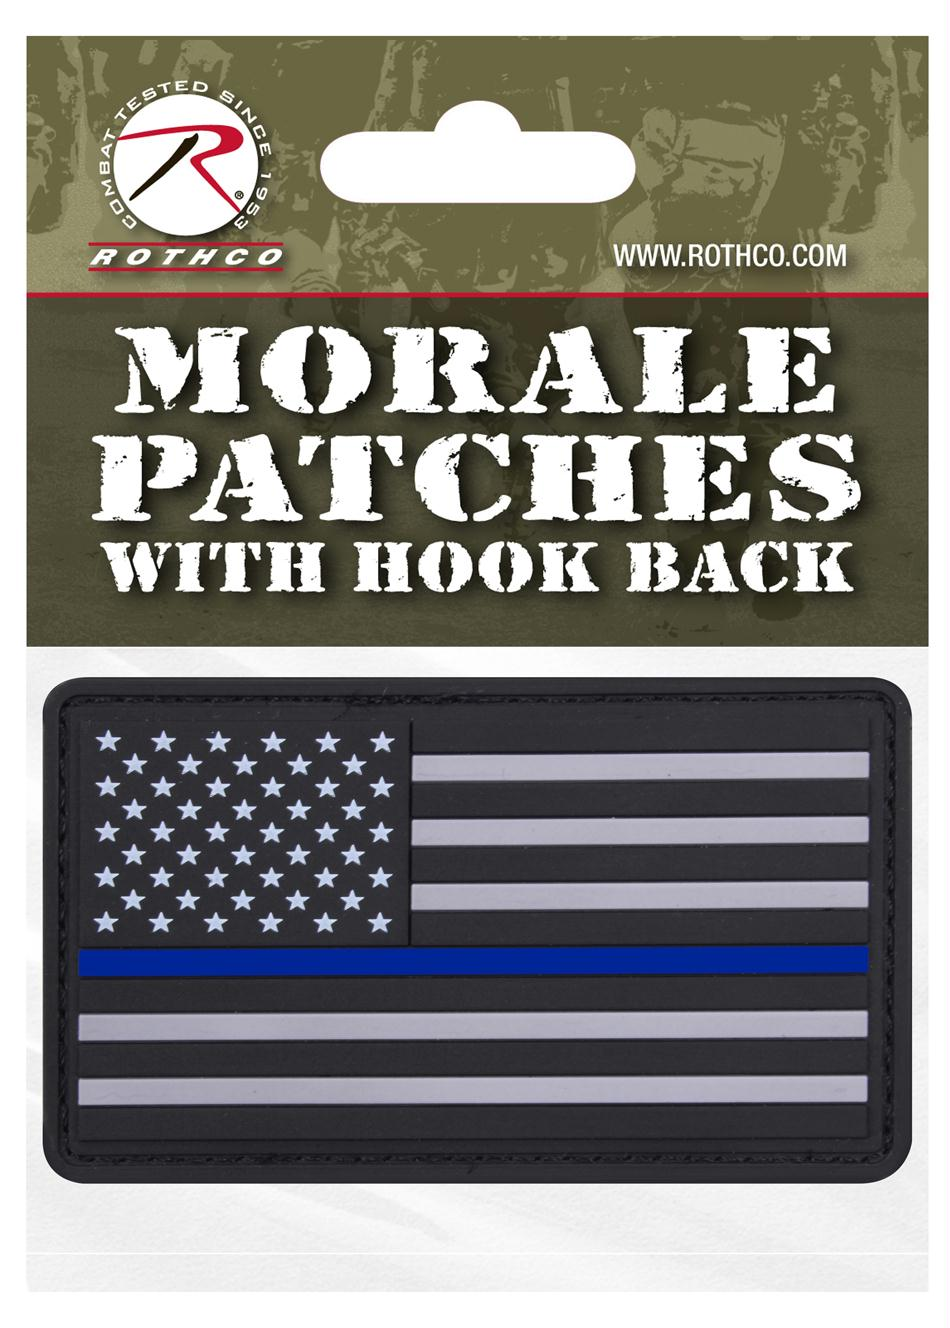 Rothco PVC Thin Blue Line Flag Patch - Header Card